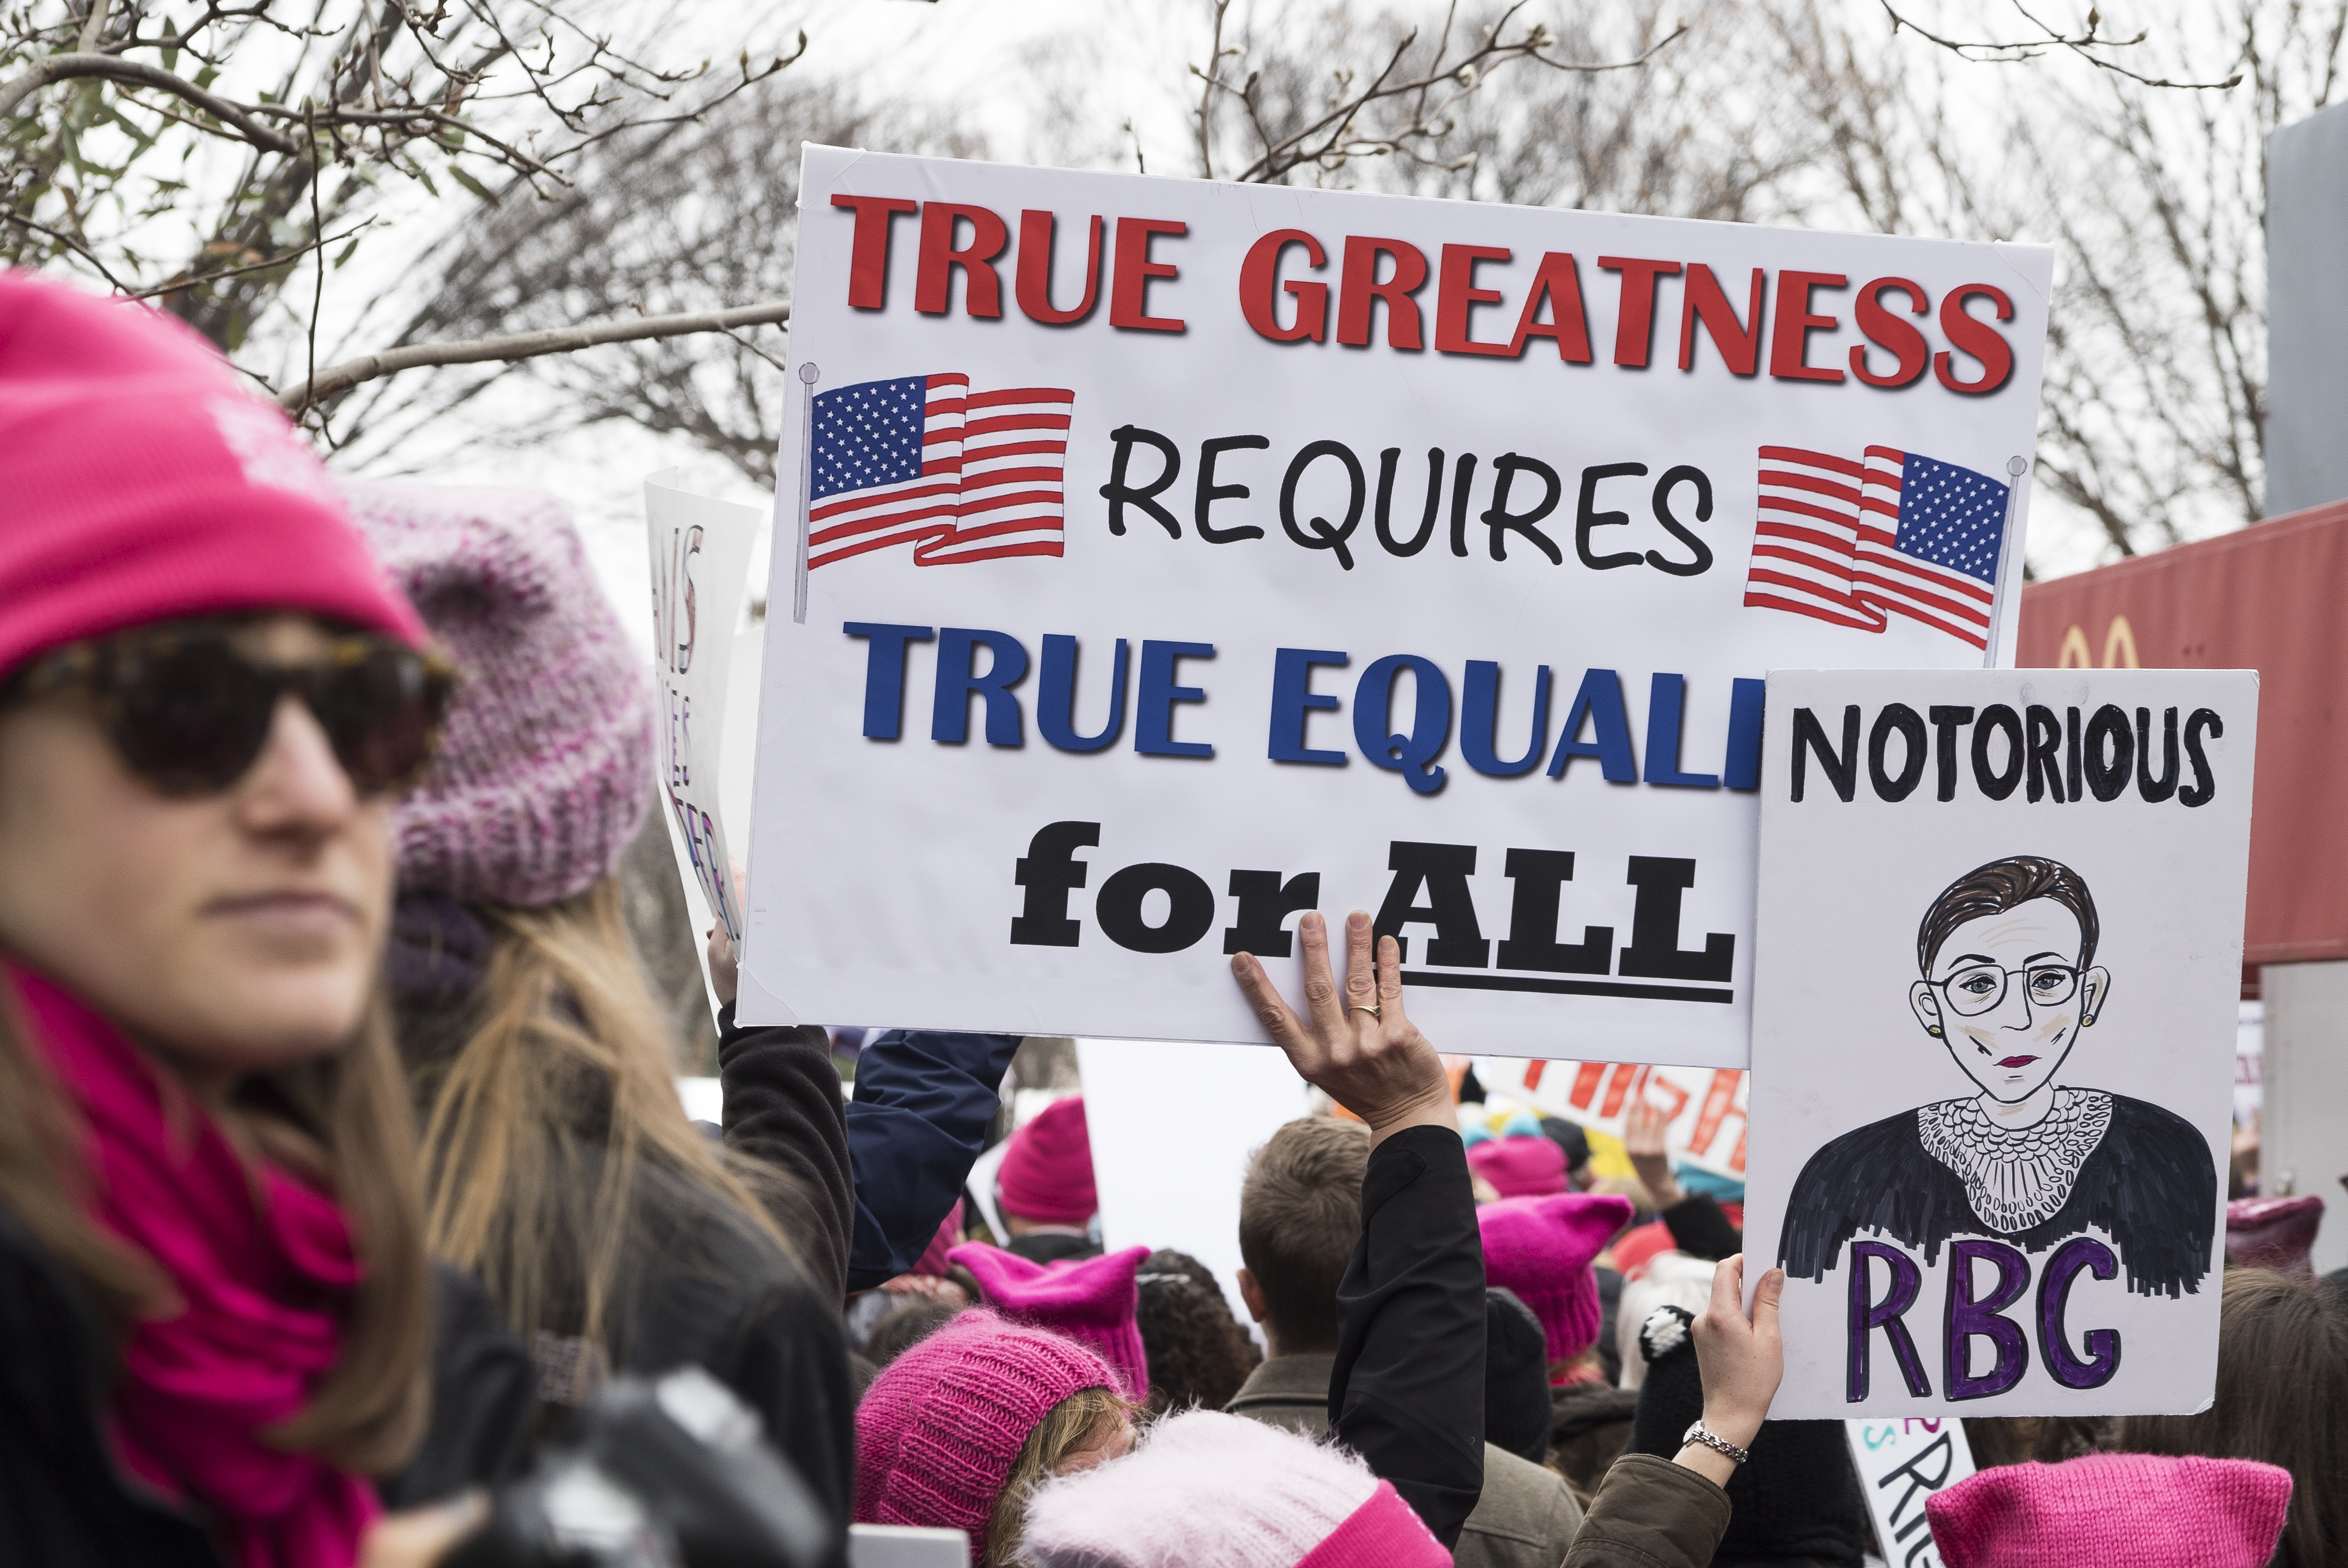 View of demonstrators, many with signs, during the Women's March on Washington, Washington DC, January 21, 2017. One sign features an illustration of US Supreme Court Justice Ruth Bader Ginsburg and reads 'Notorious RBG'. (Photo by Barbara Alper/Getty Images)